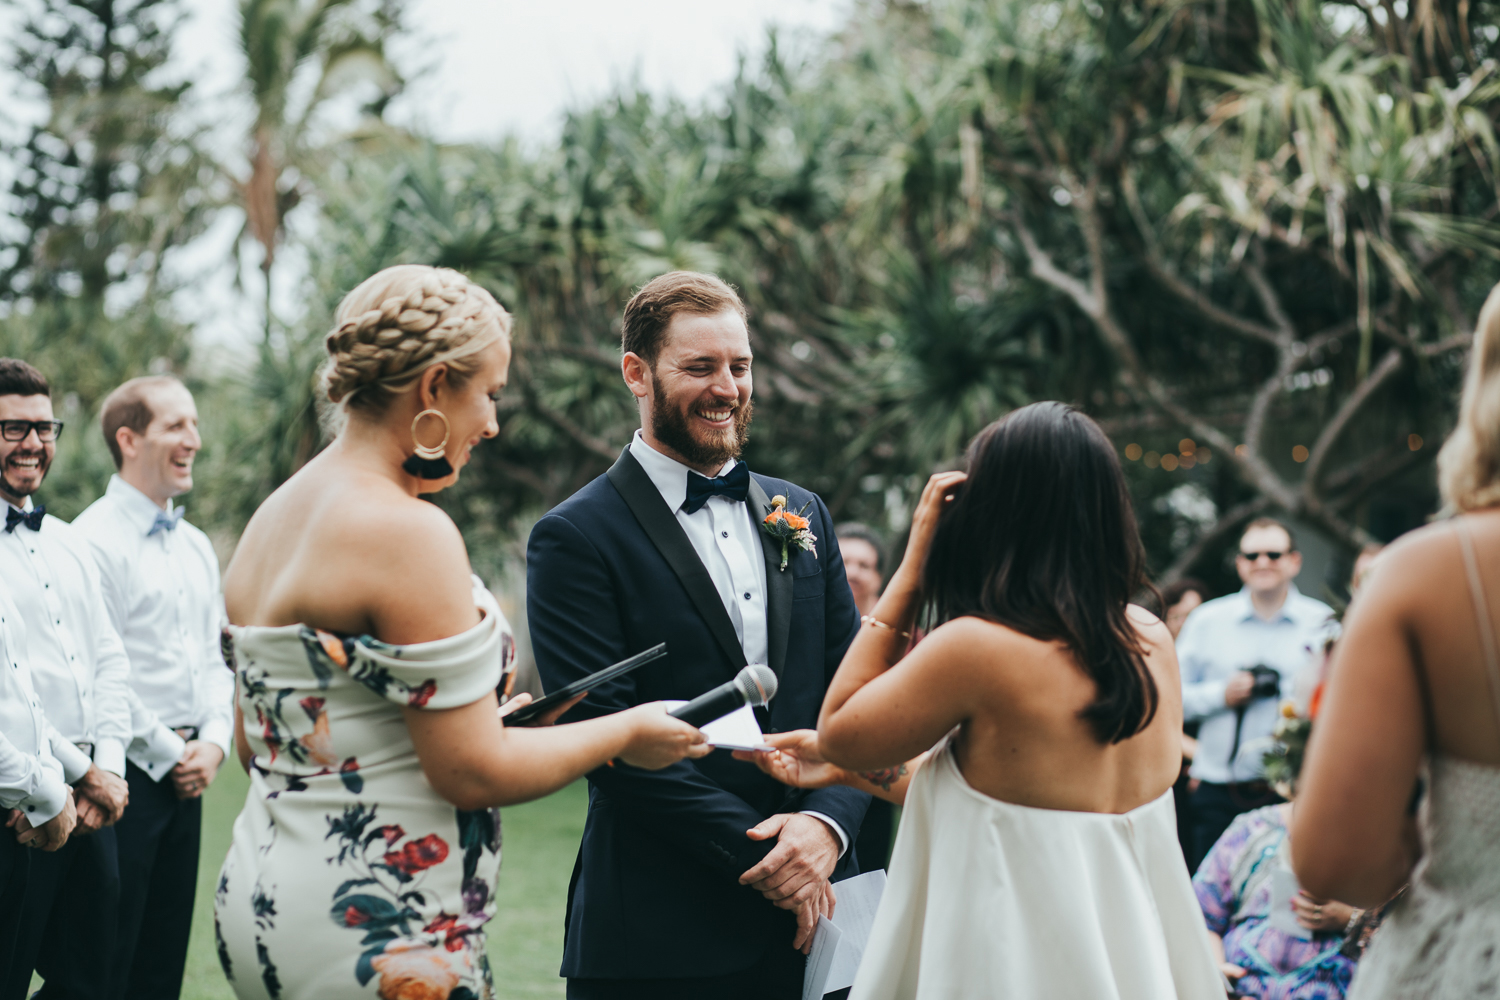 056-halcyon_house_byron_bay_wedding_photographer.jpg